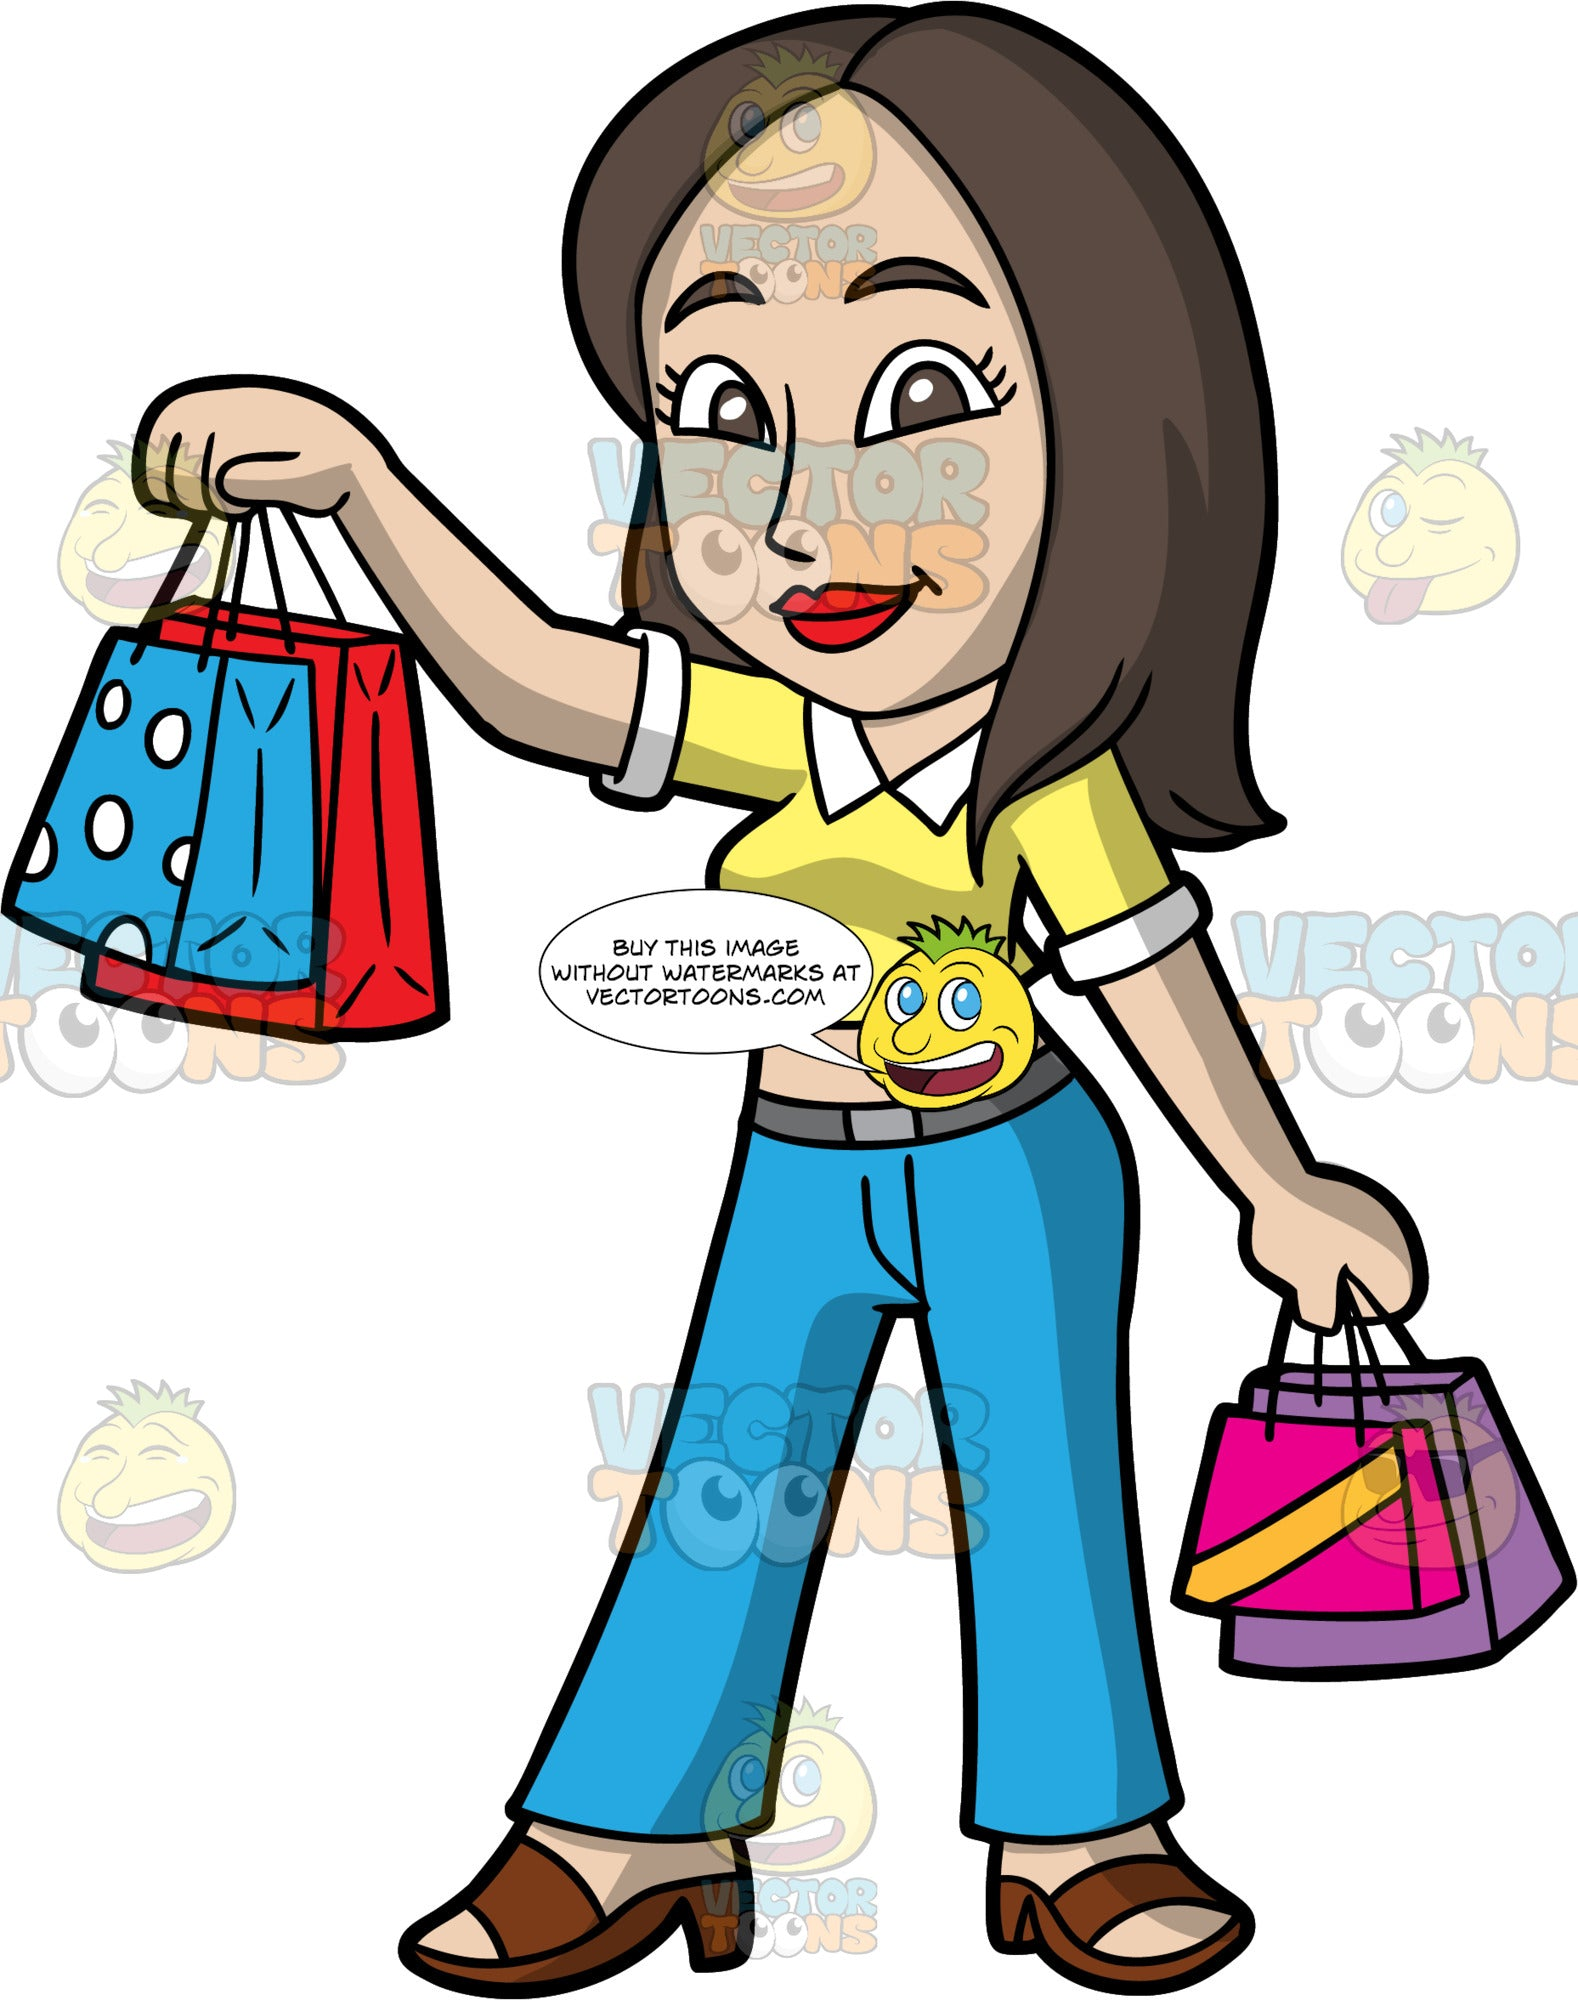 A Woman Happy With The Purchases She Just Made. A woman with long brown hair and brown eyes, wearing blue jeans, a yellow crop top, and brown sandals, holding up some shopping bags after a day out shopping